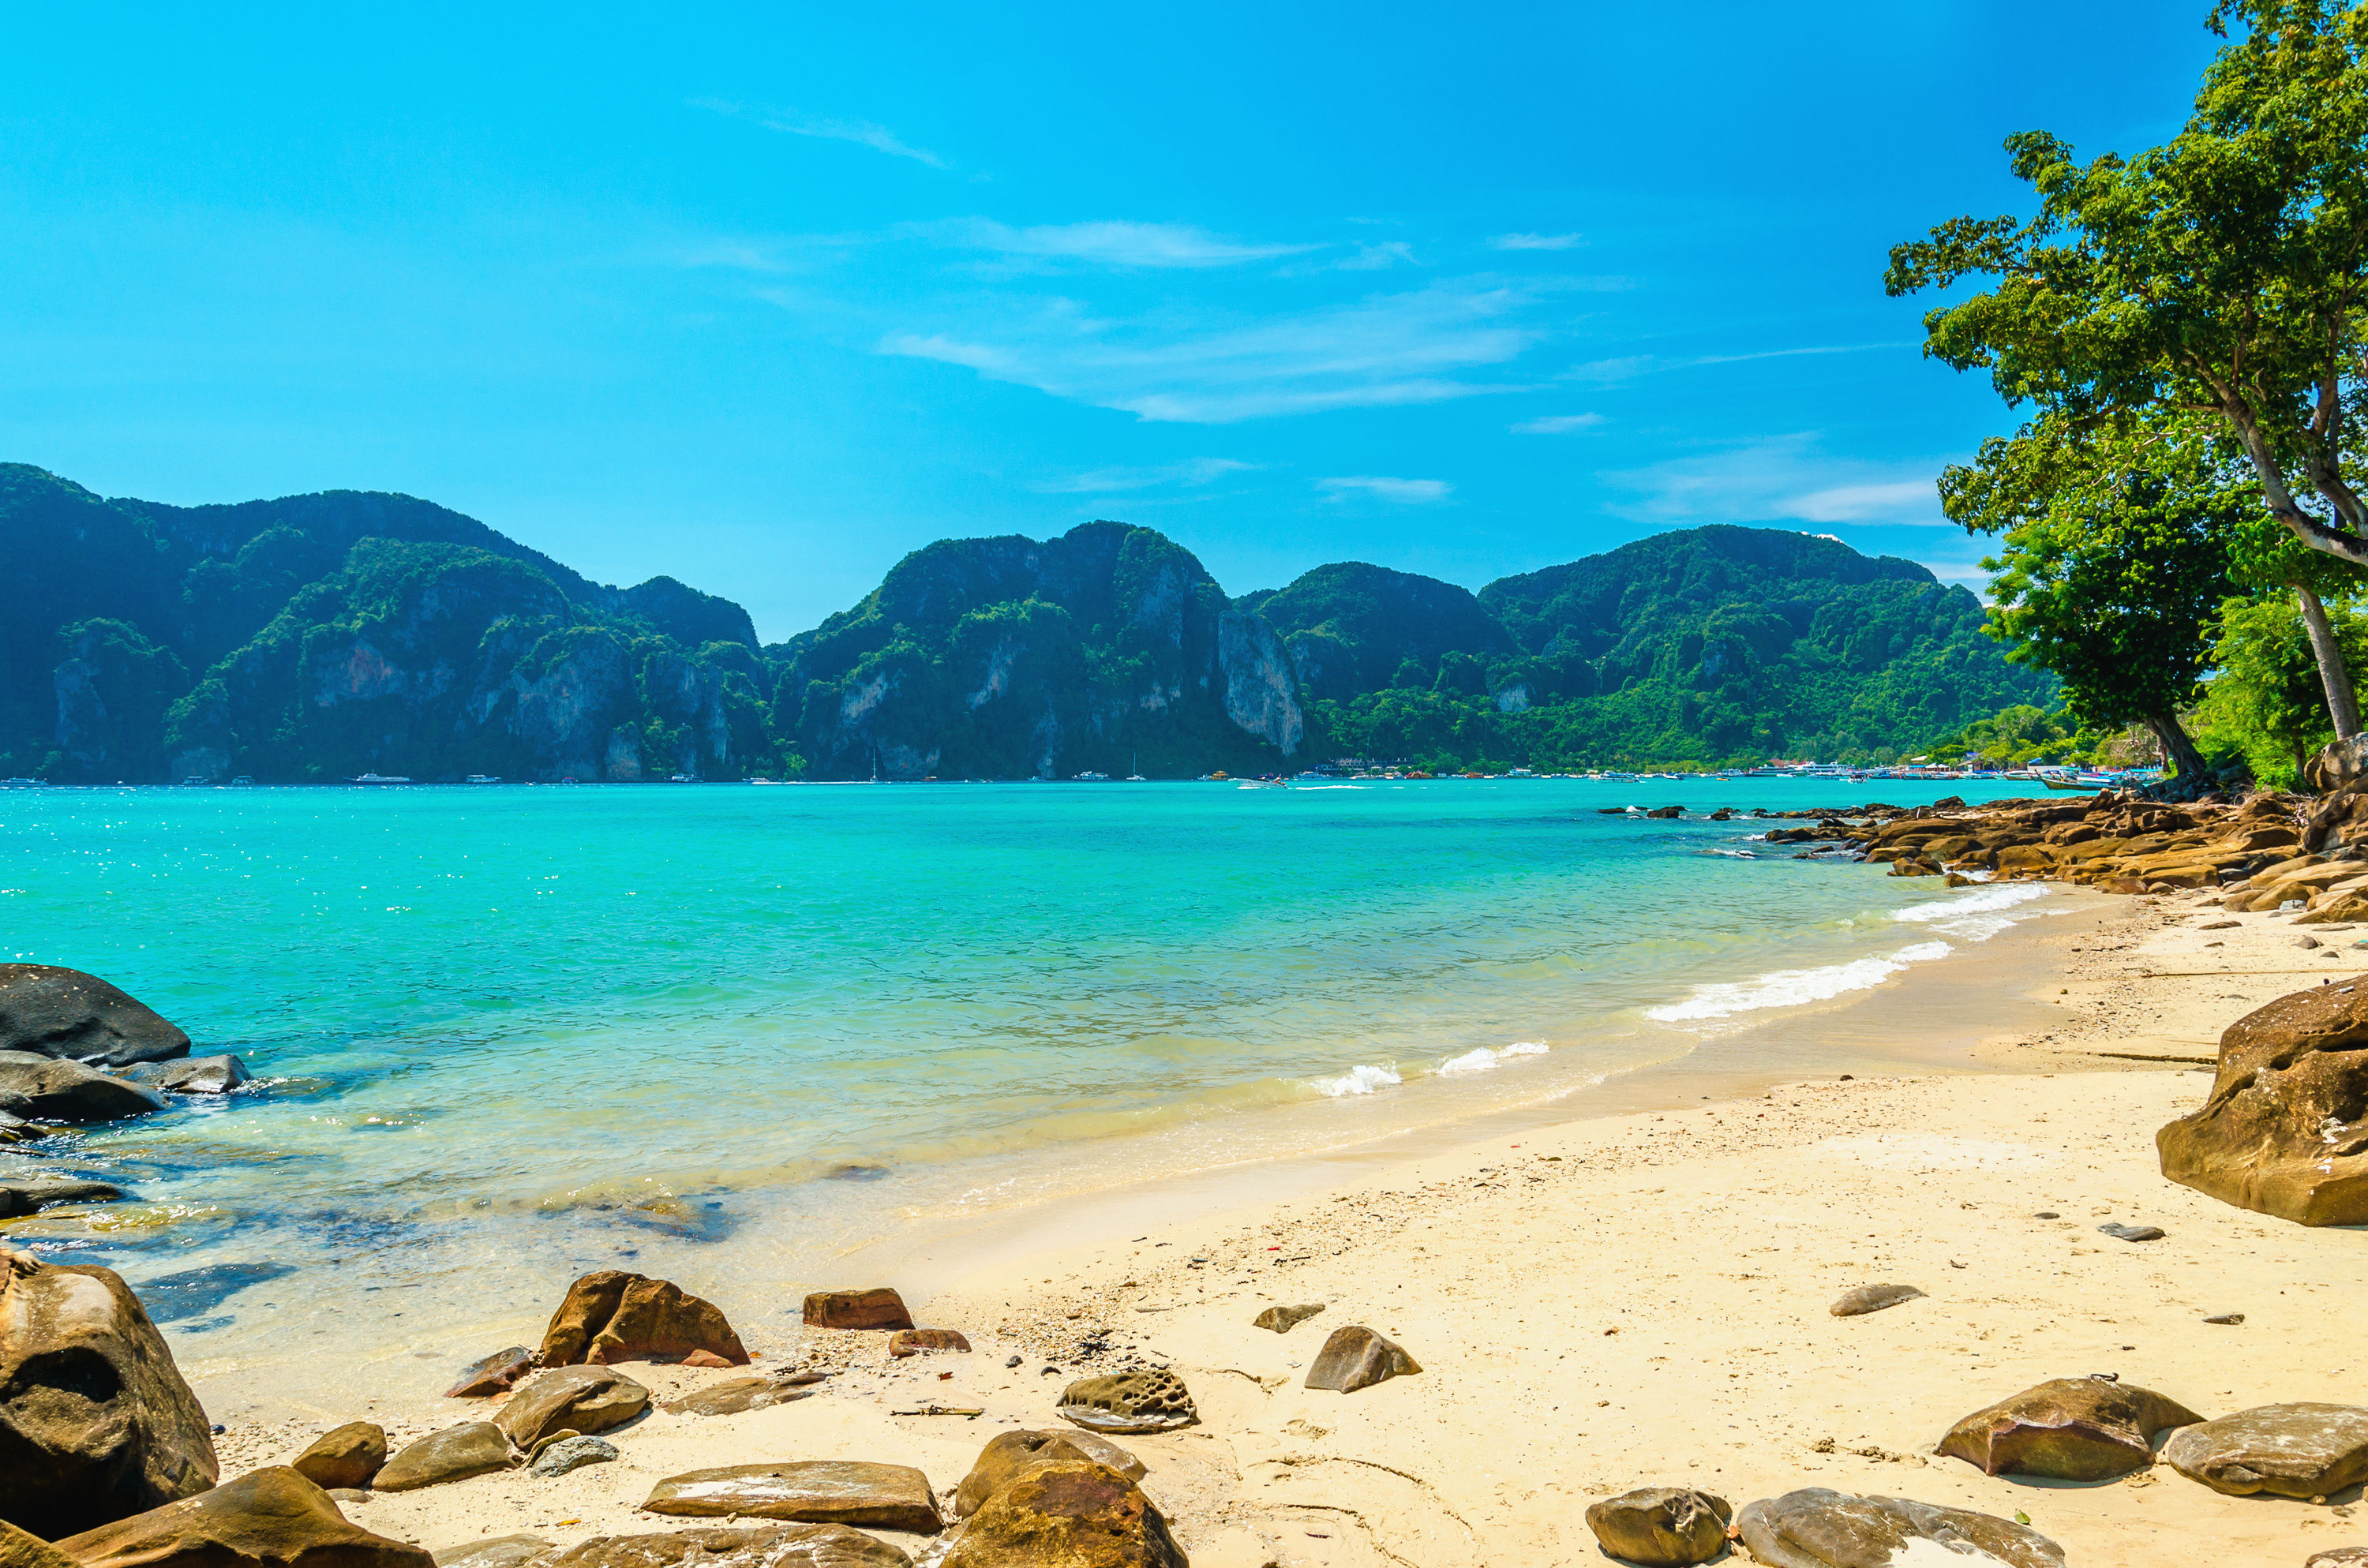 Sandy beach with trees, clear blue waters and green hills in the background.